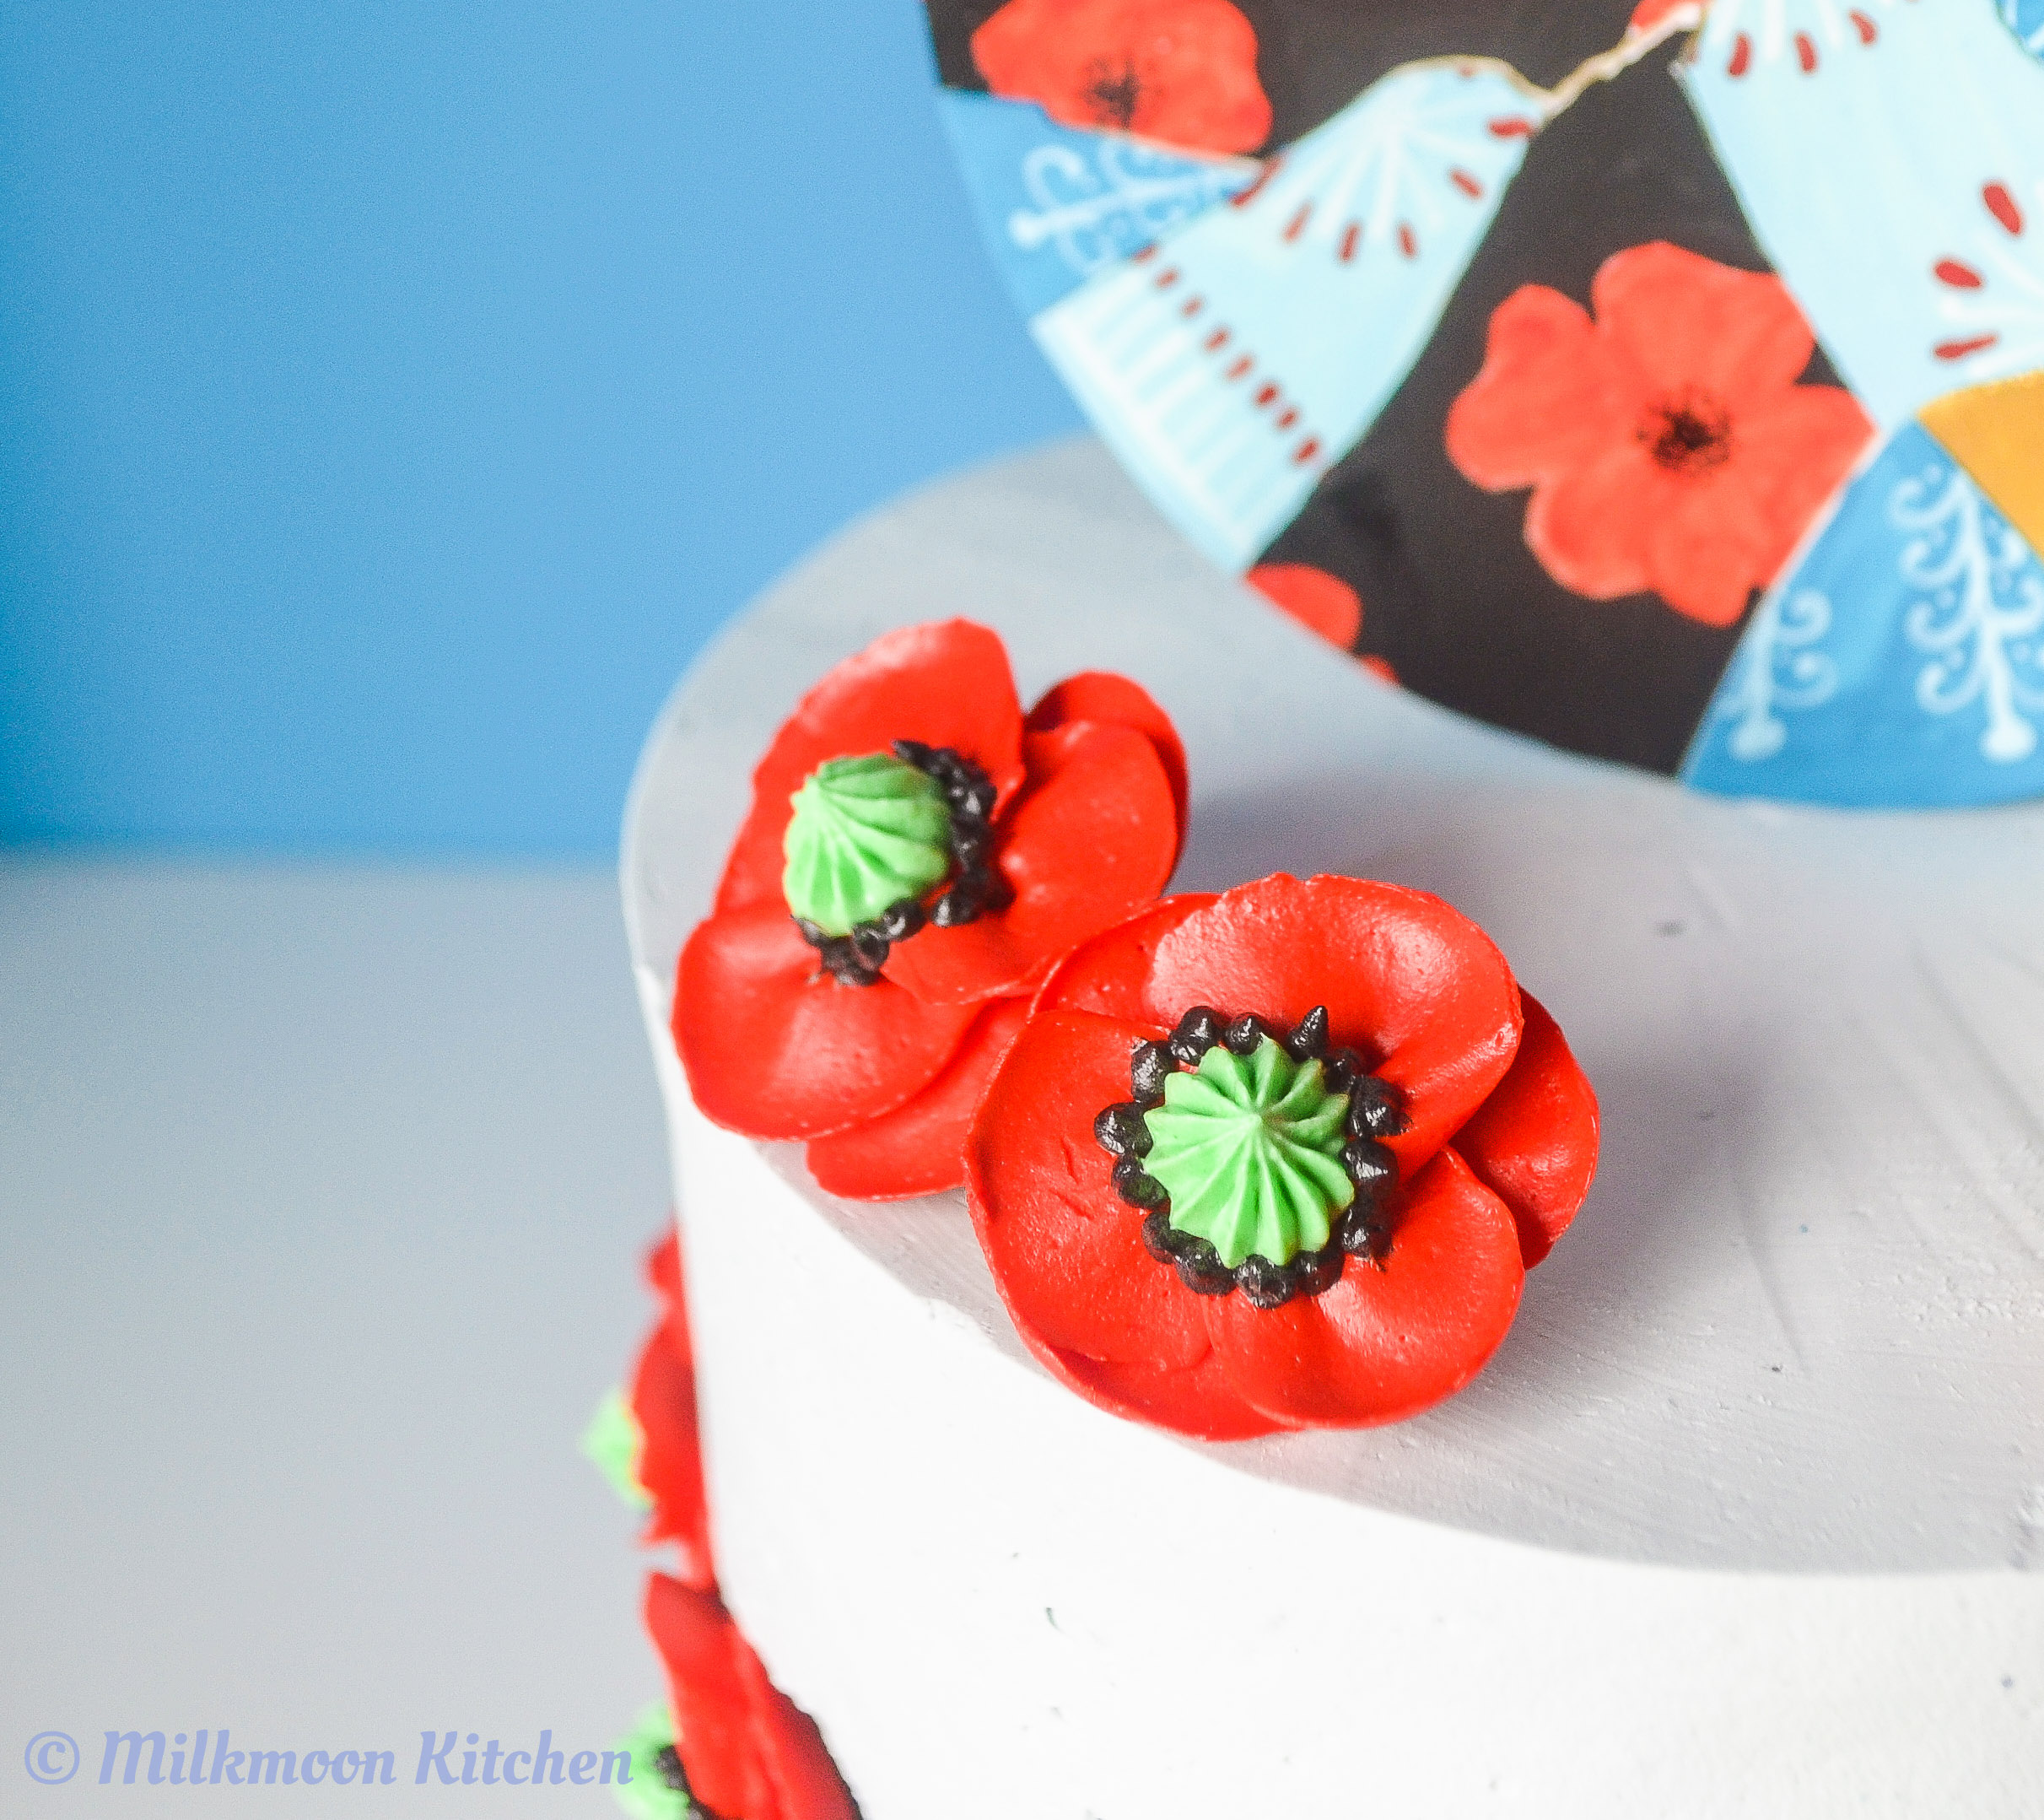 Lemon Poppy Seed Pysanka Cake by Milkmoon Kitchen